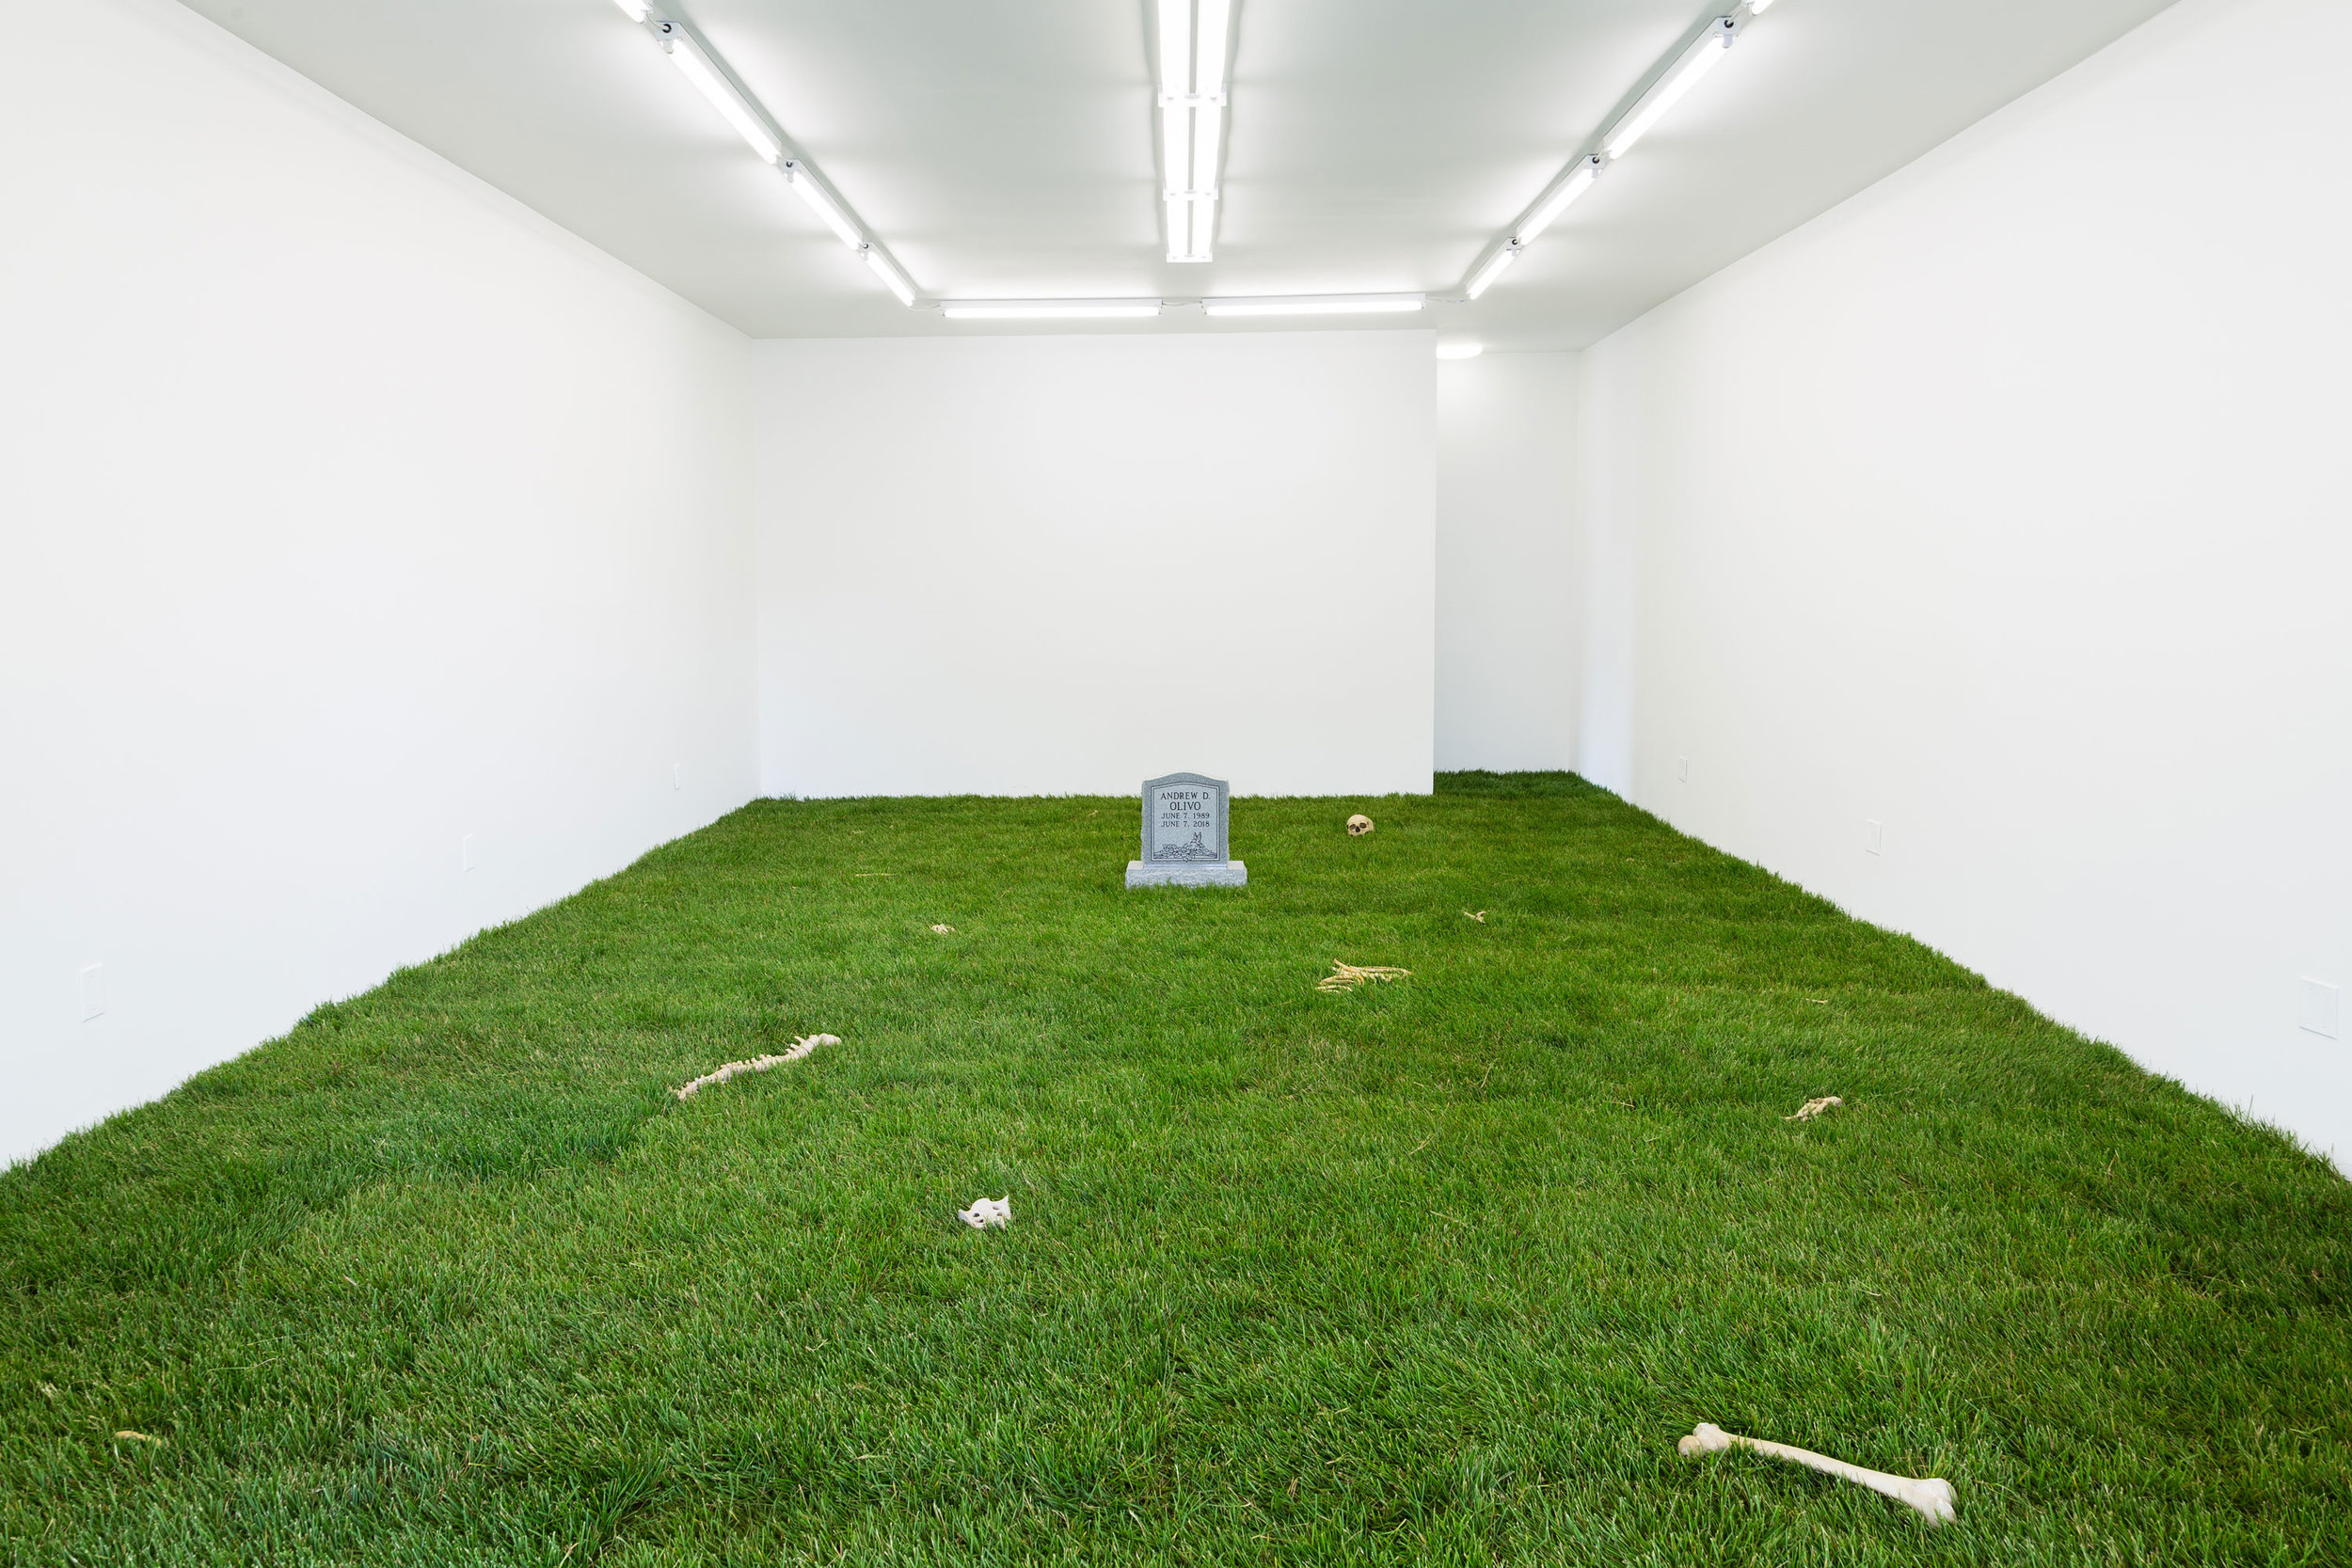 PUPPIES PUPPIES,  ANDREW D. OLIVO 6.7.1989 - 6.7.2018 , 2018   WHAT PIPELINE, DETROIT (INSTALLATION VIEW)   COURTESY THE ARTIST AND WHAT PIPELINE